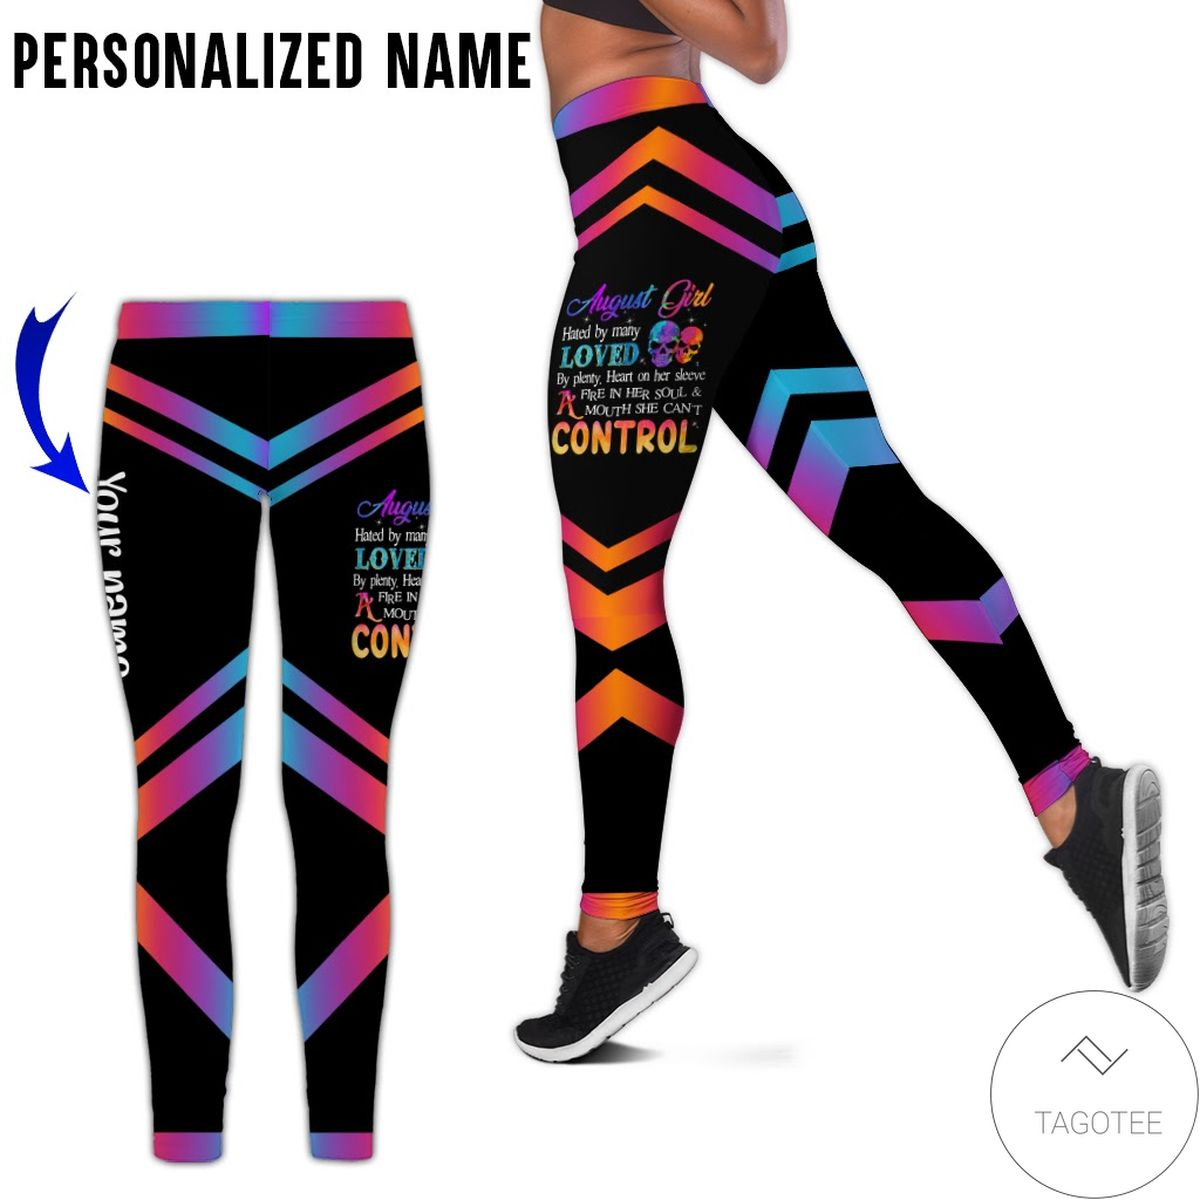 Personalized August Girl Hated By Many A Fire In Her Soul And Mouth She Can't Control Leggings